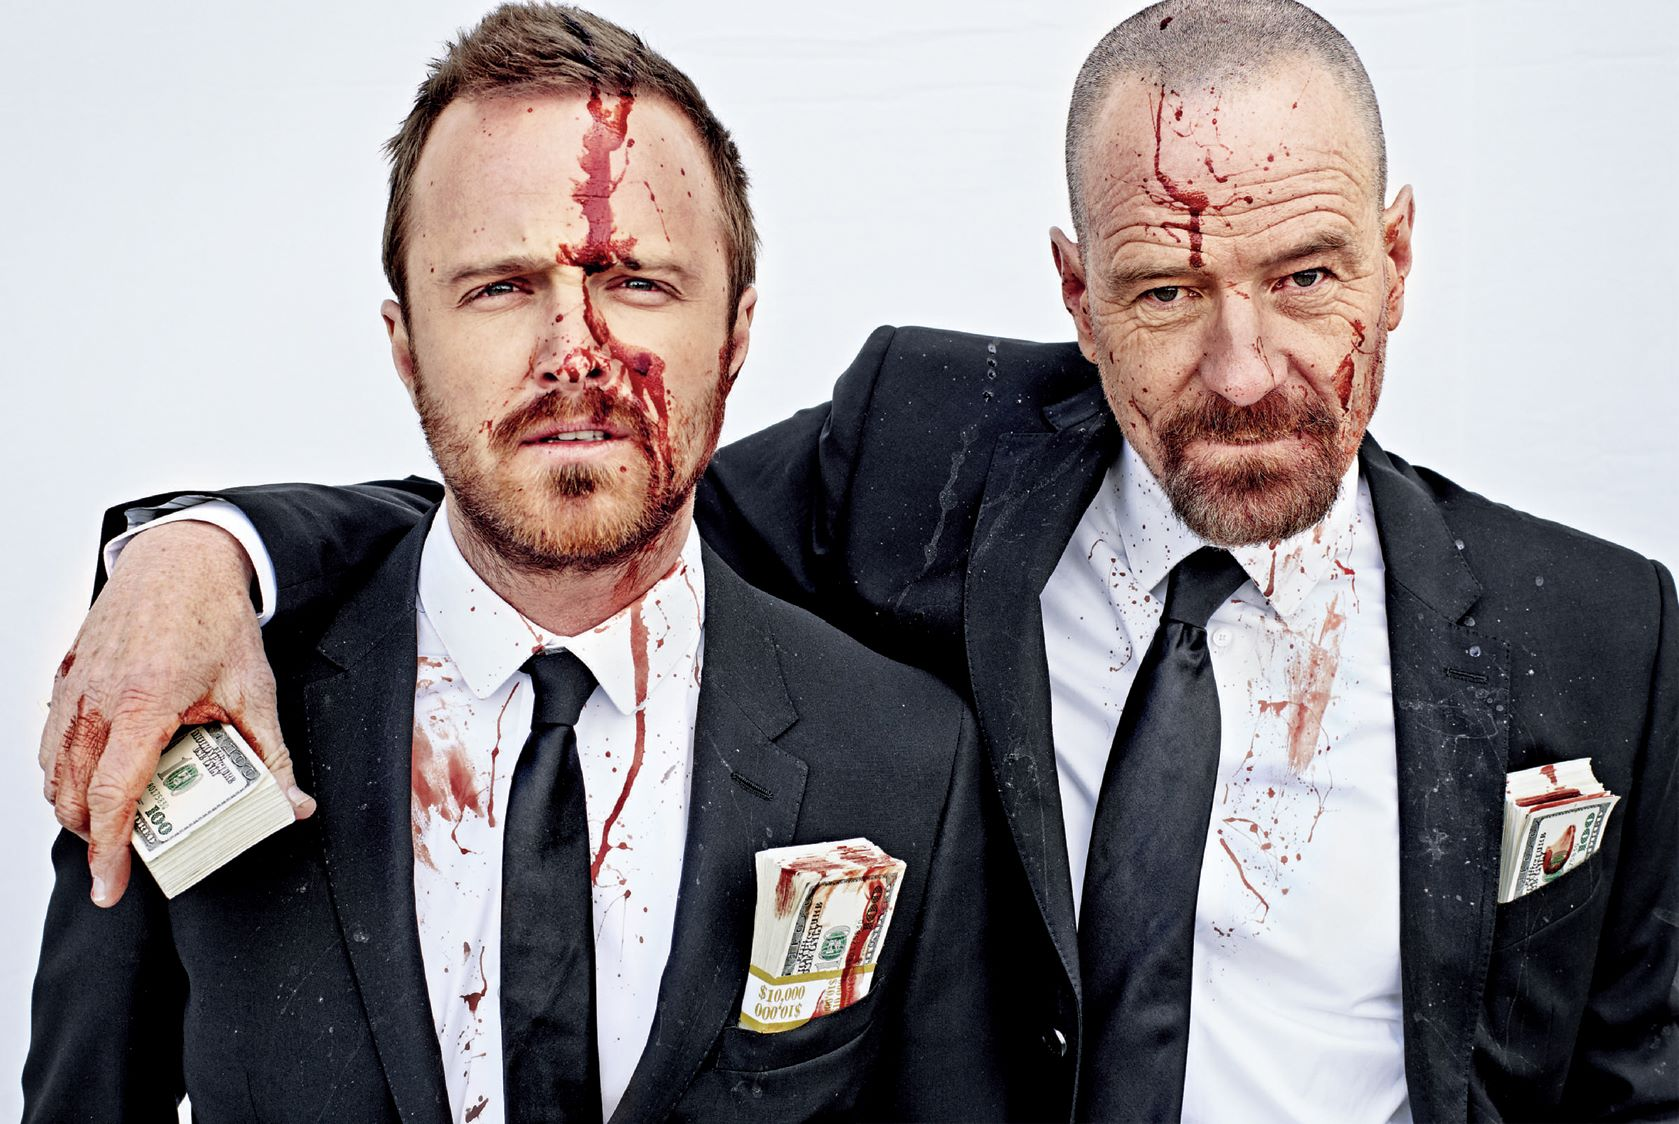 A 'Breaking Bad' Reunion For 2014 Emmy Awards Sketch | TV ...